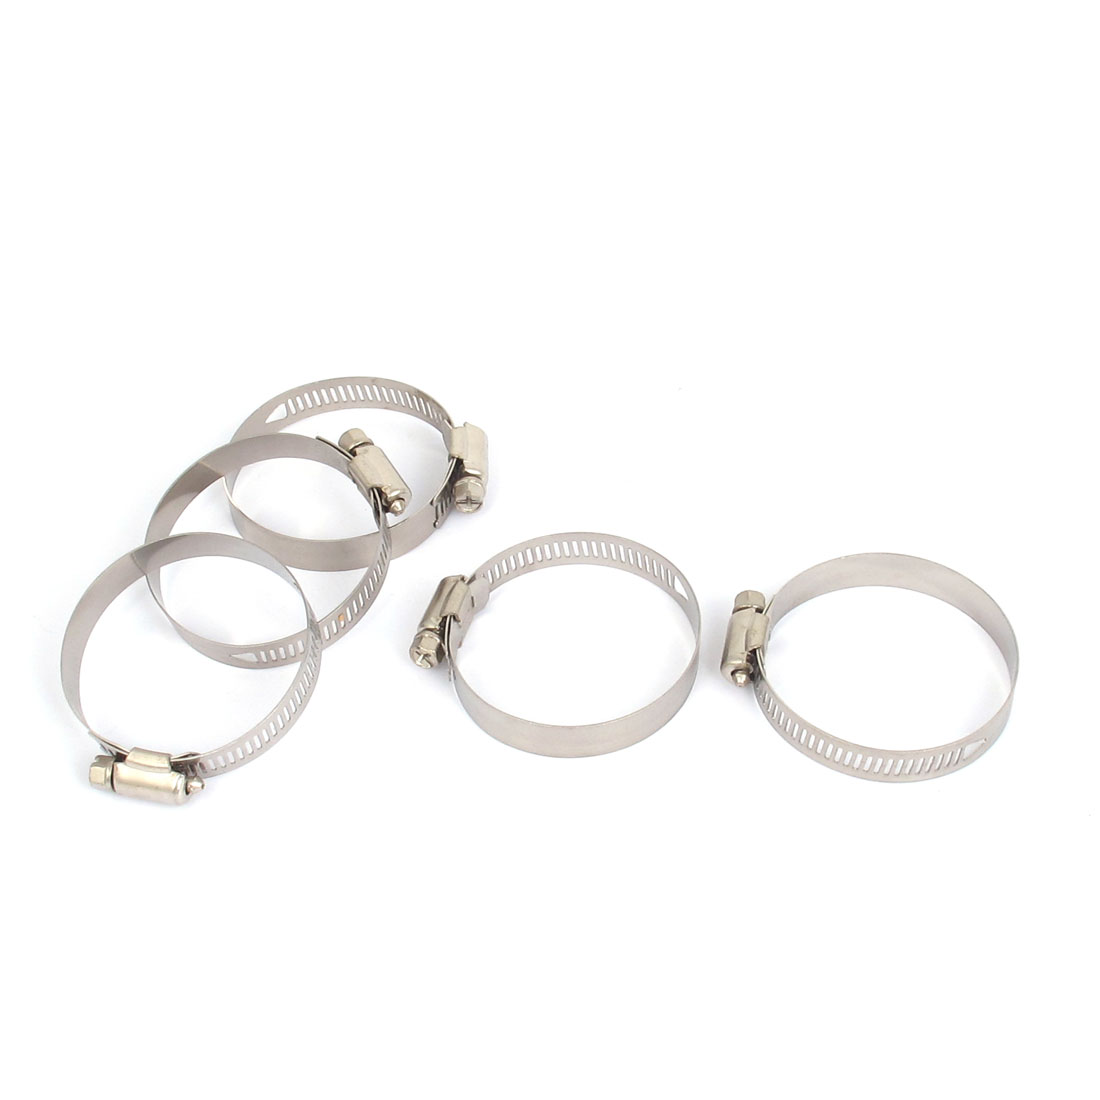 44mm to 64mm Range 12mm Band Width Stainless Steel Hose Pipe Clamp Hoop 5pcs